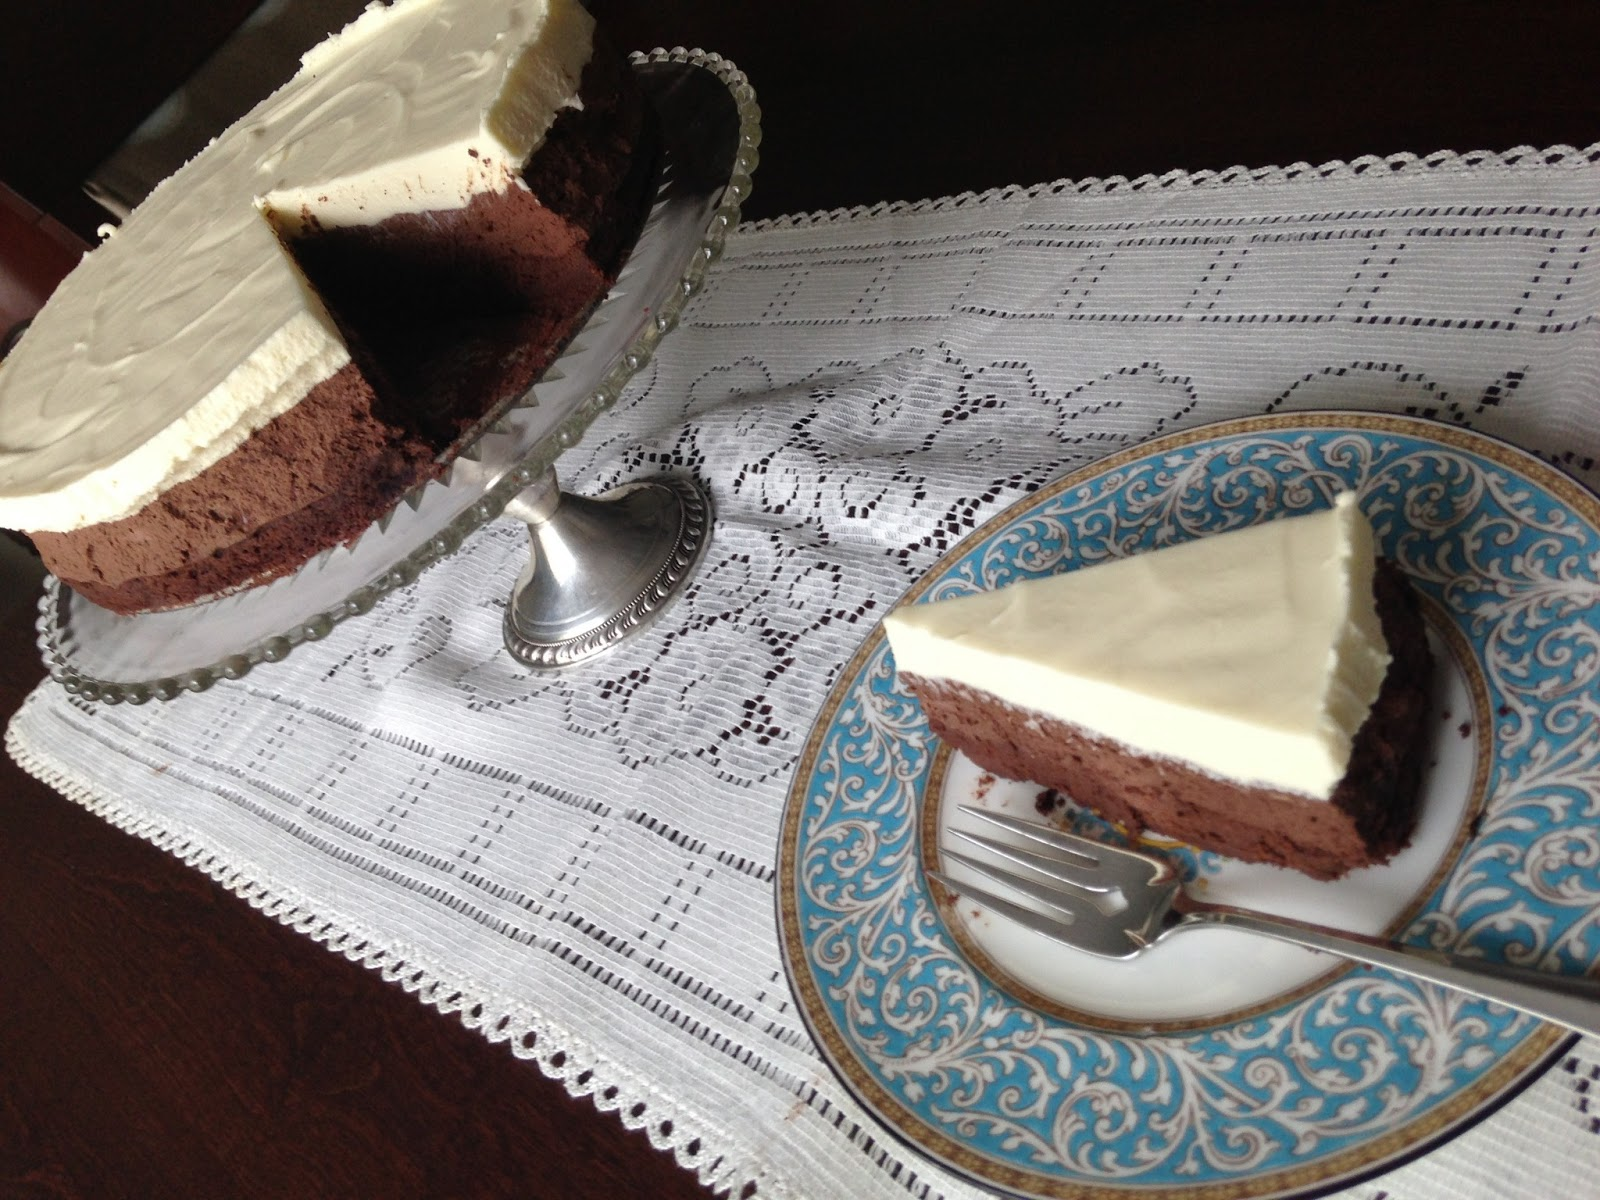 Mary-Making: Triple Chocolate Mousse Torte and the Best Party Dessert